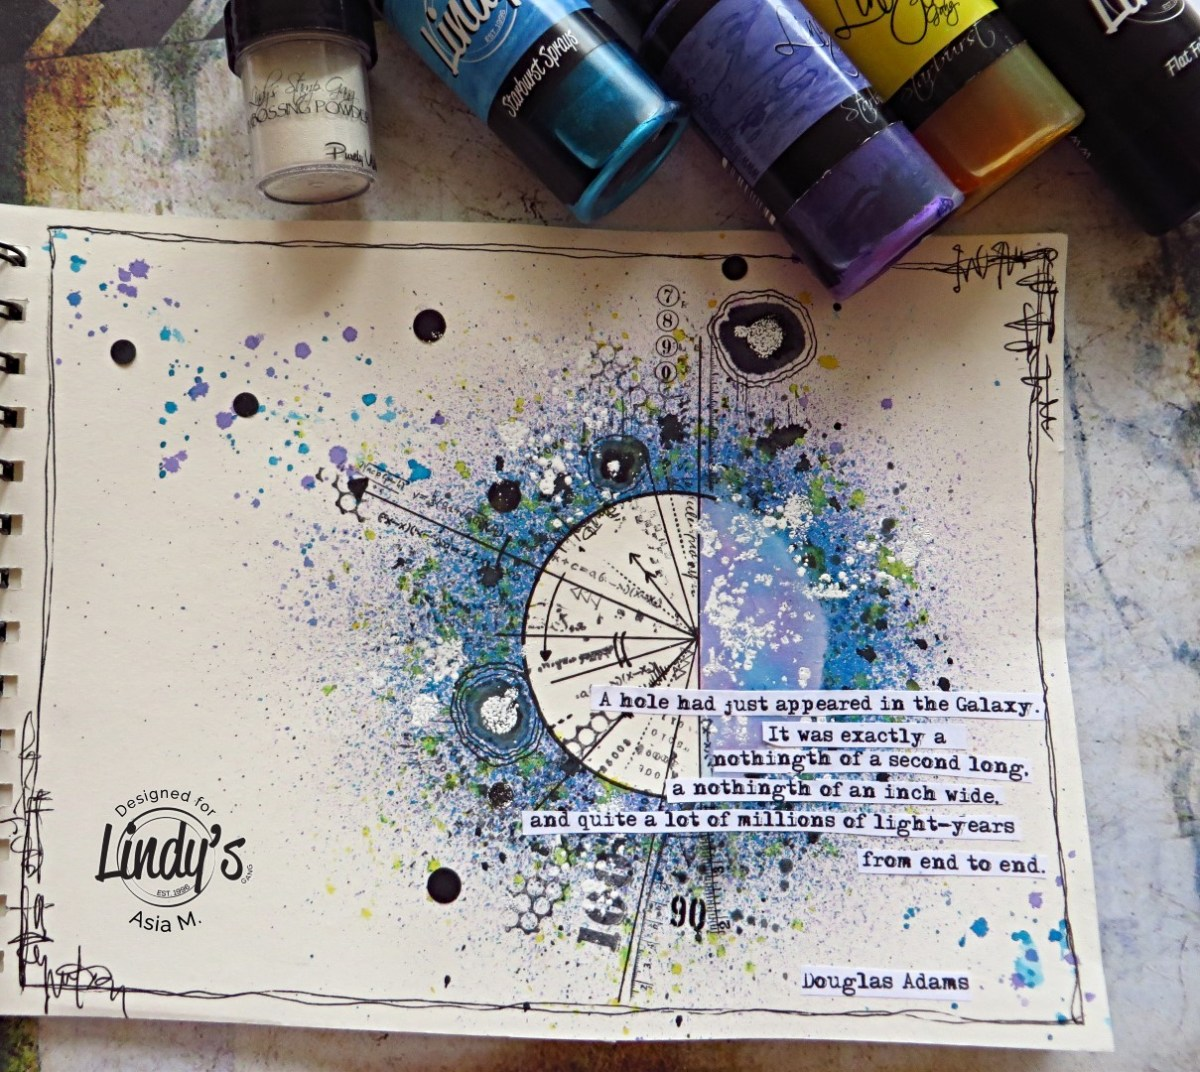 The Hitchhiker's Guide to the Galaxy Page using Lindy's